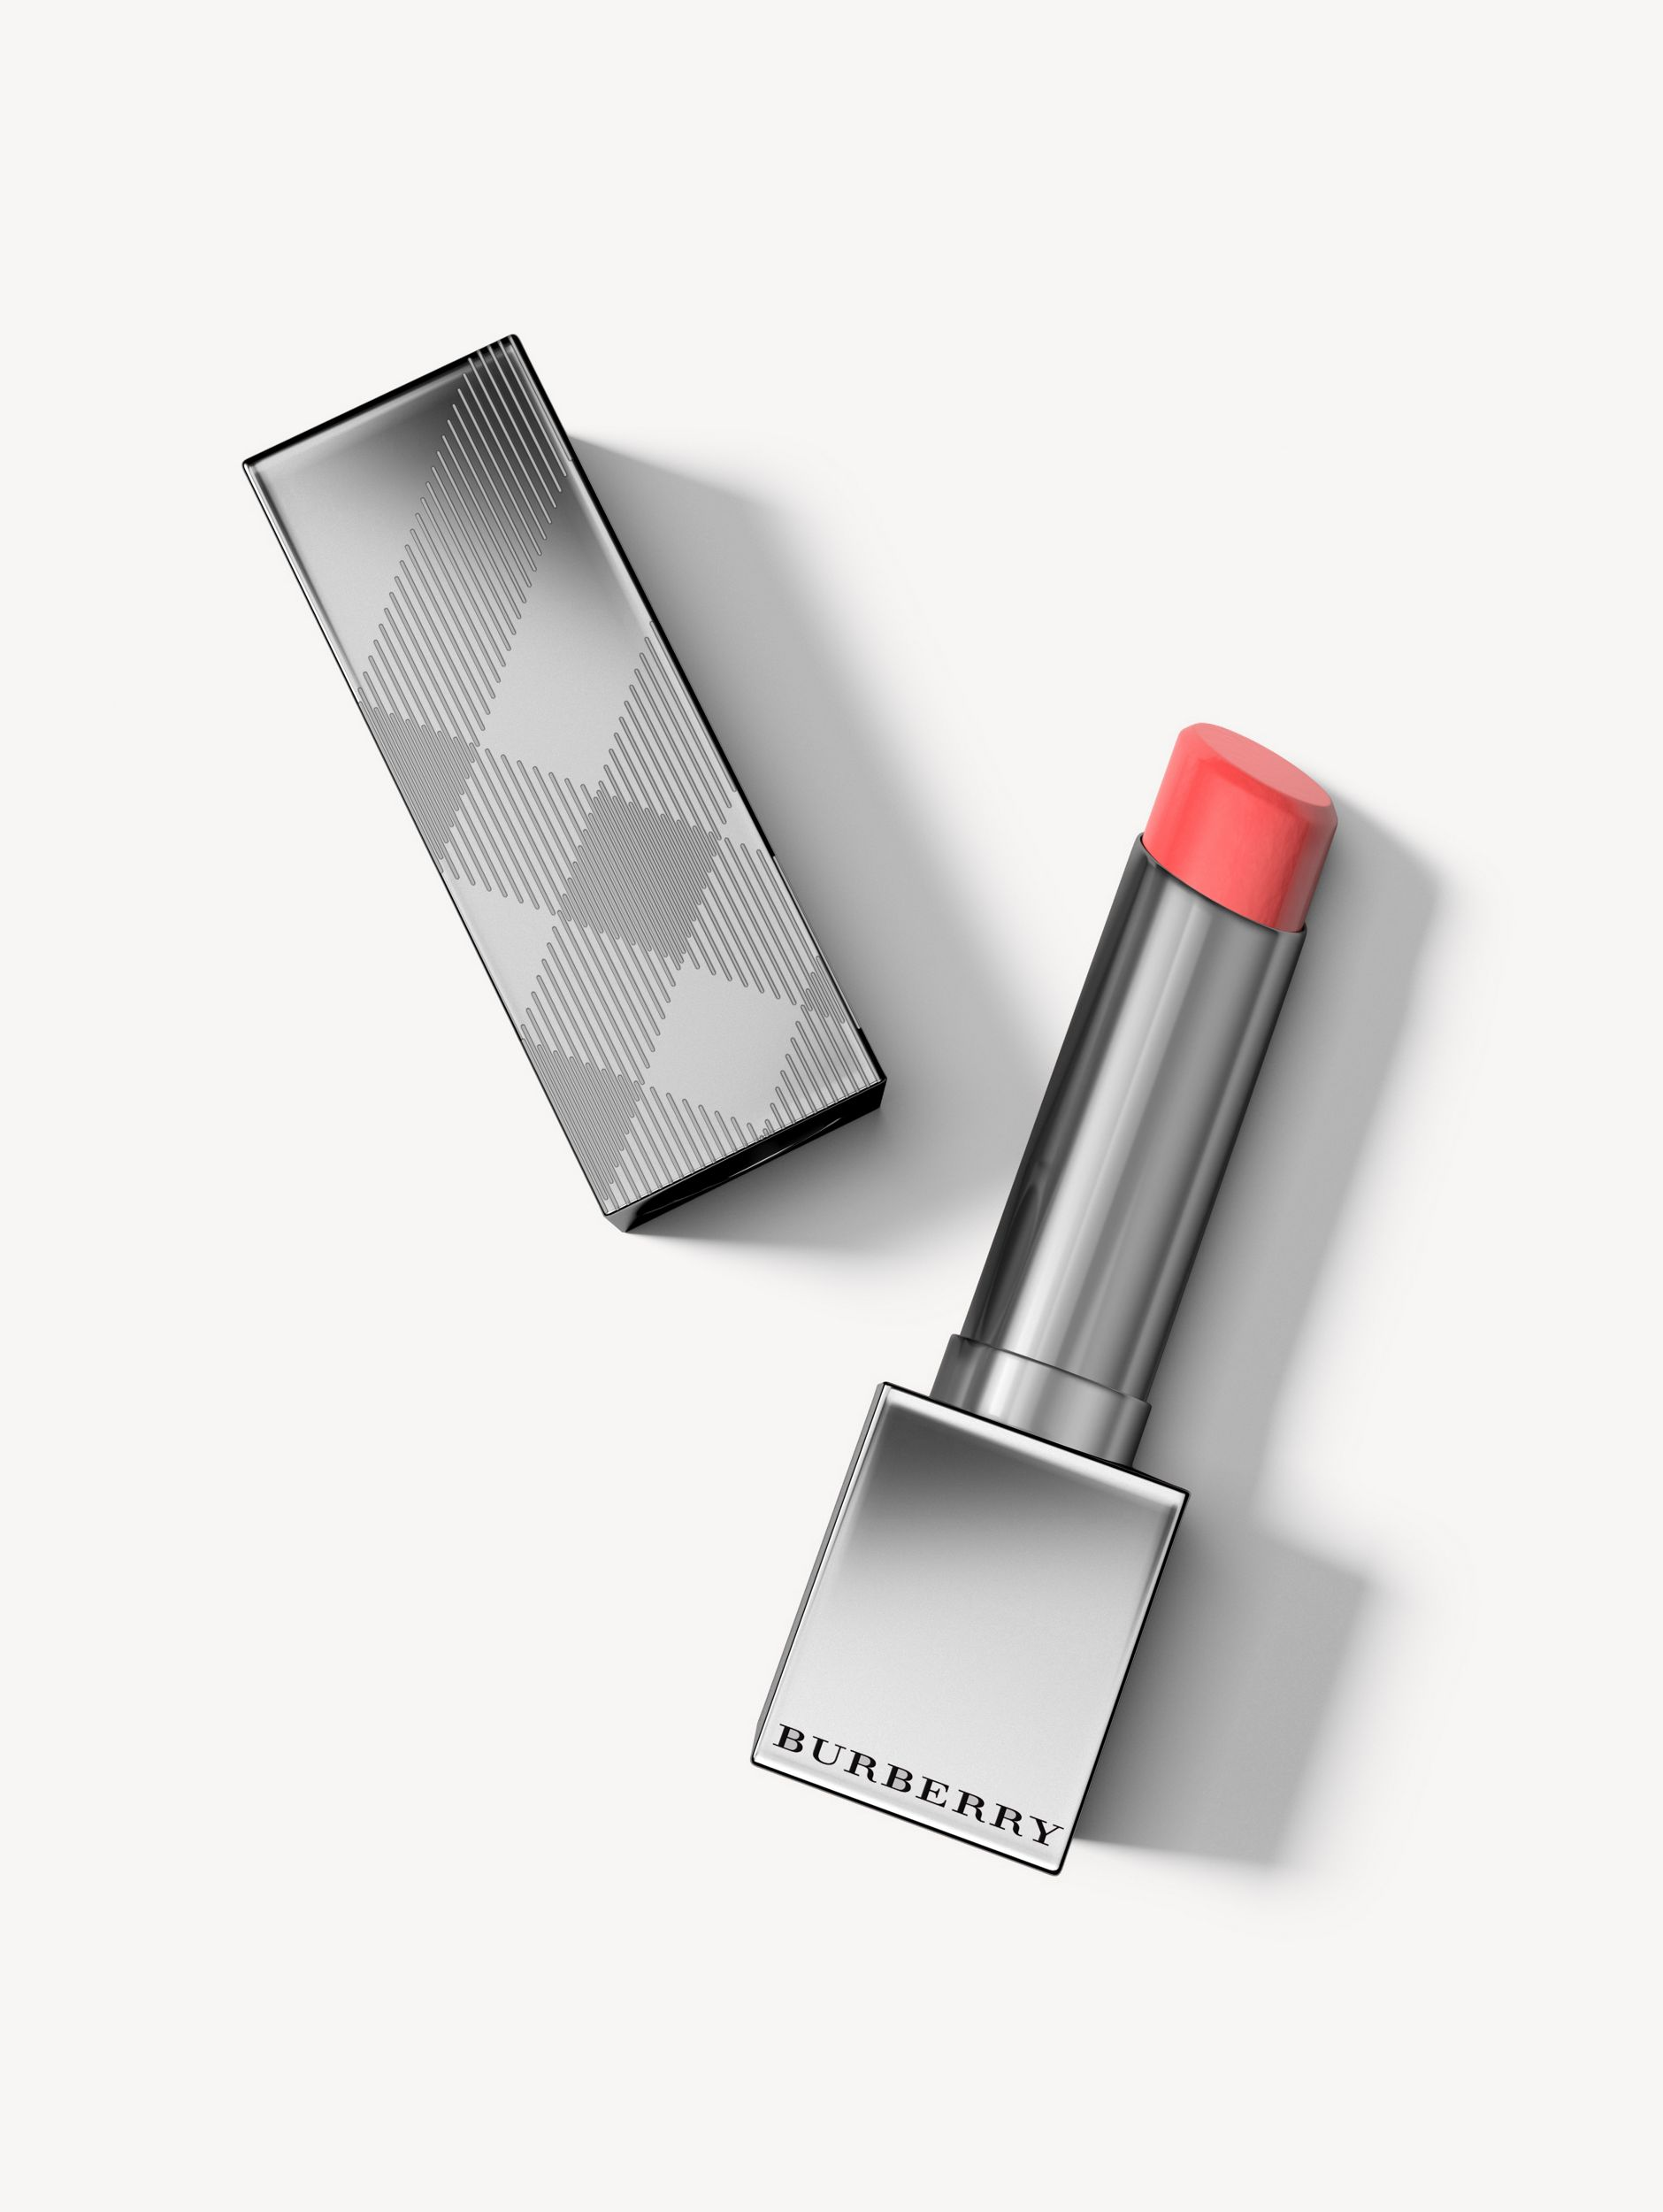 Burberry Kisses Sheer – Coral Pink No.265 - Women | Burberry - 1